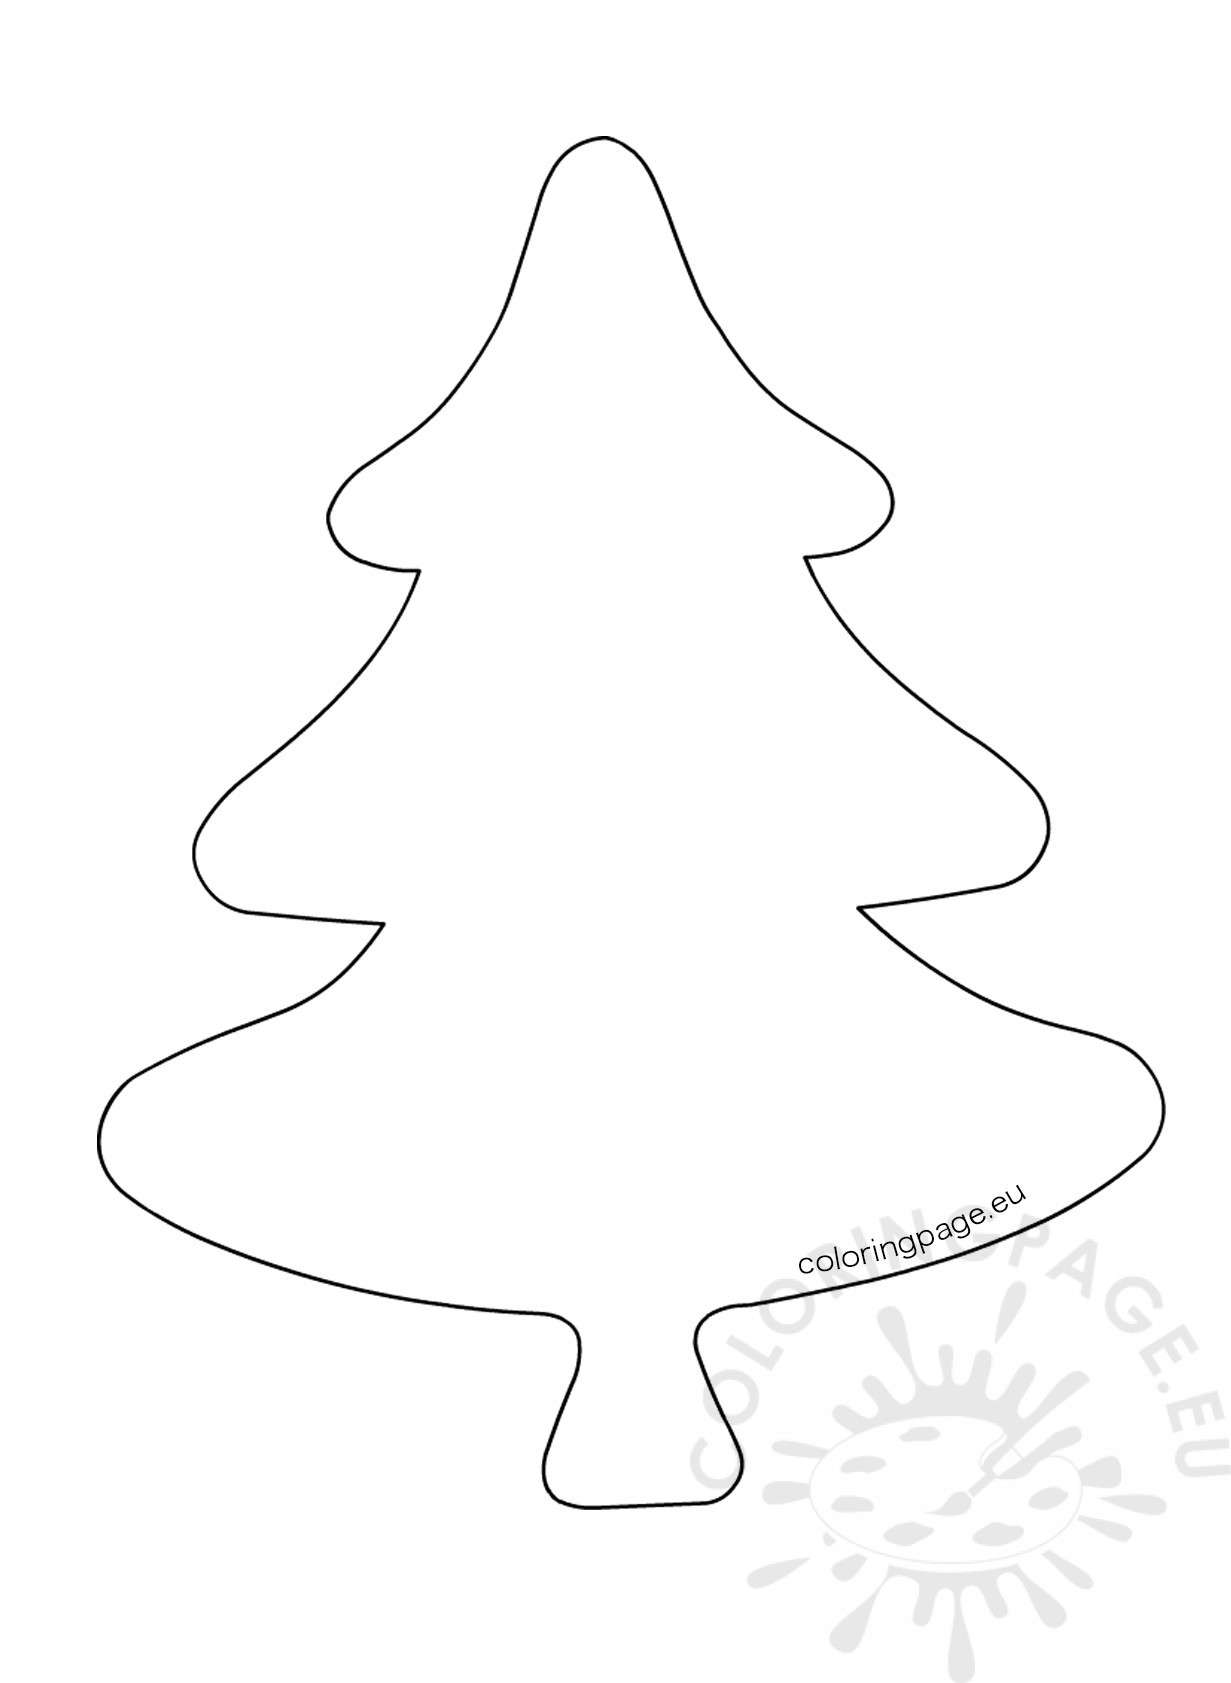 Felt Christmas Tree Ornament Template Coloring Page